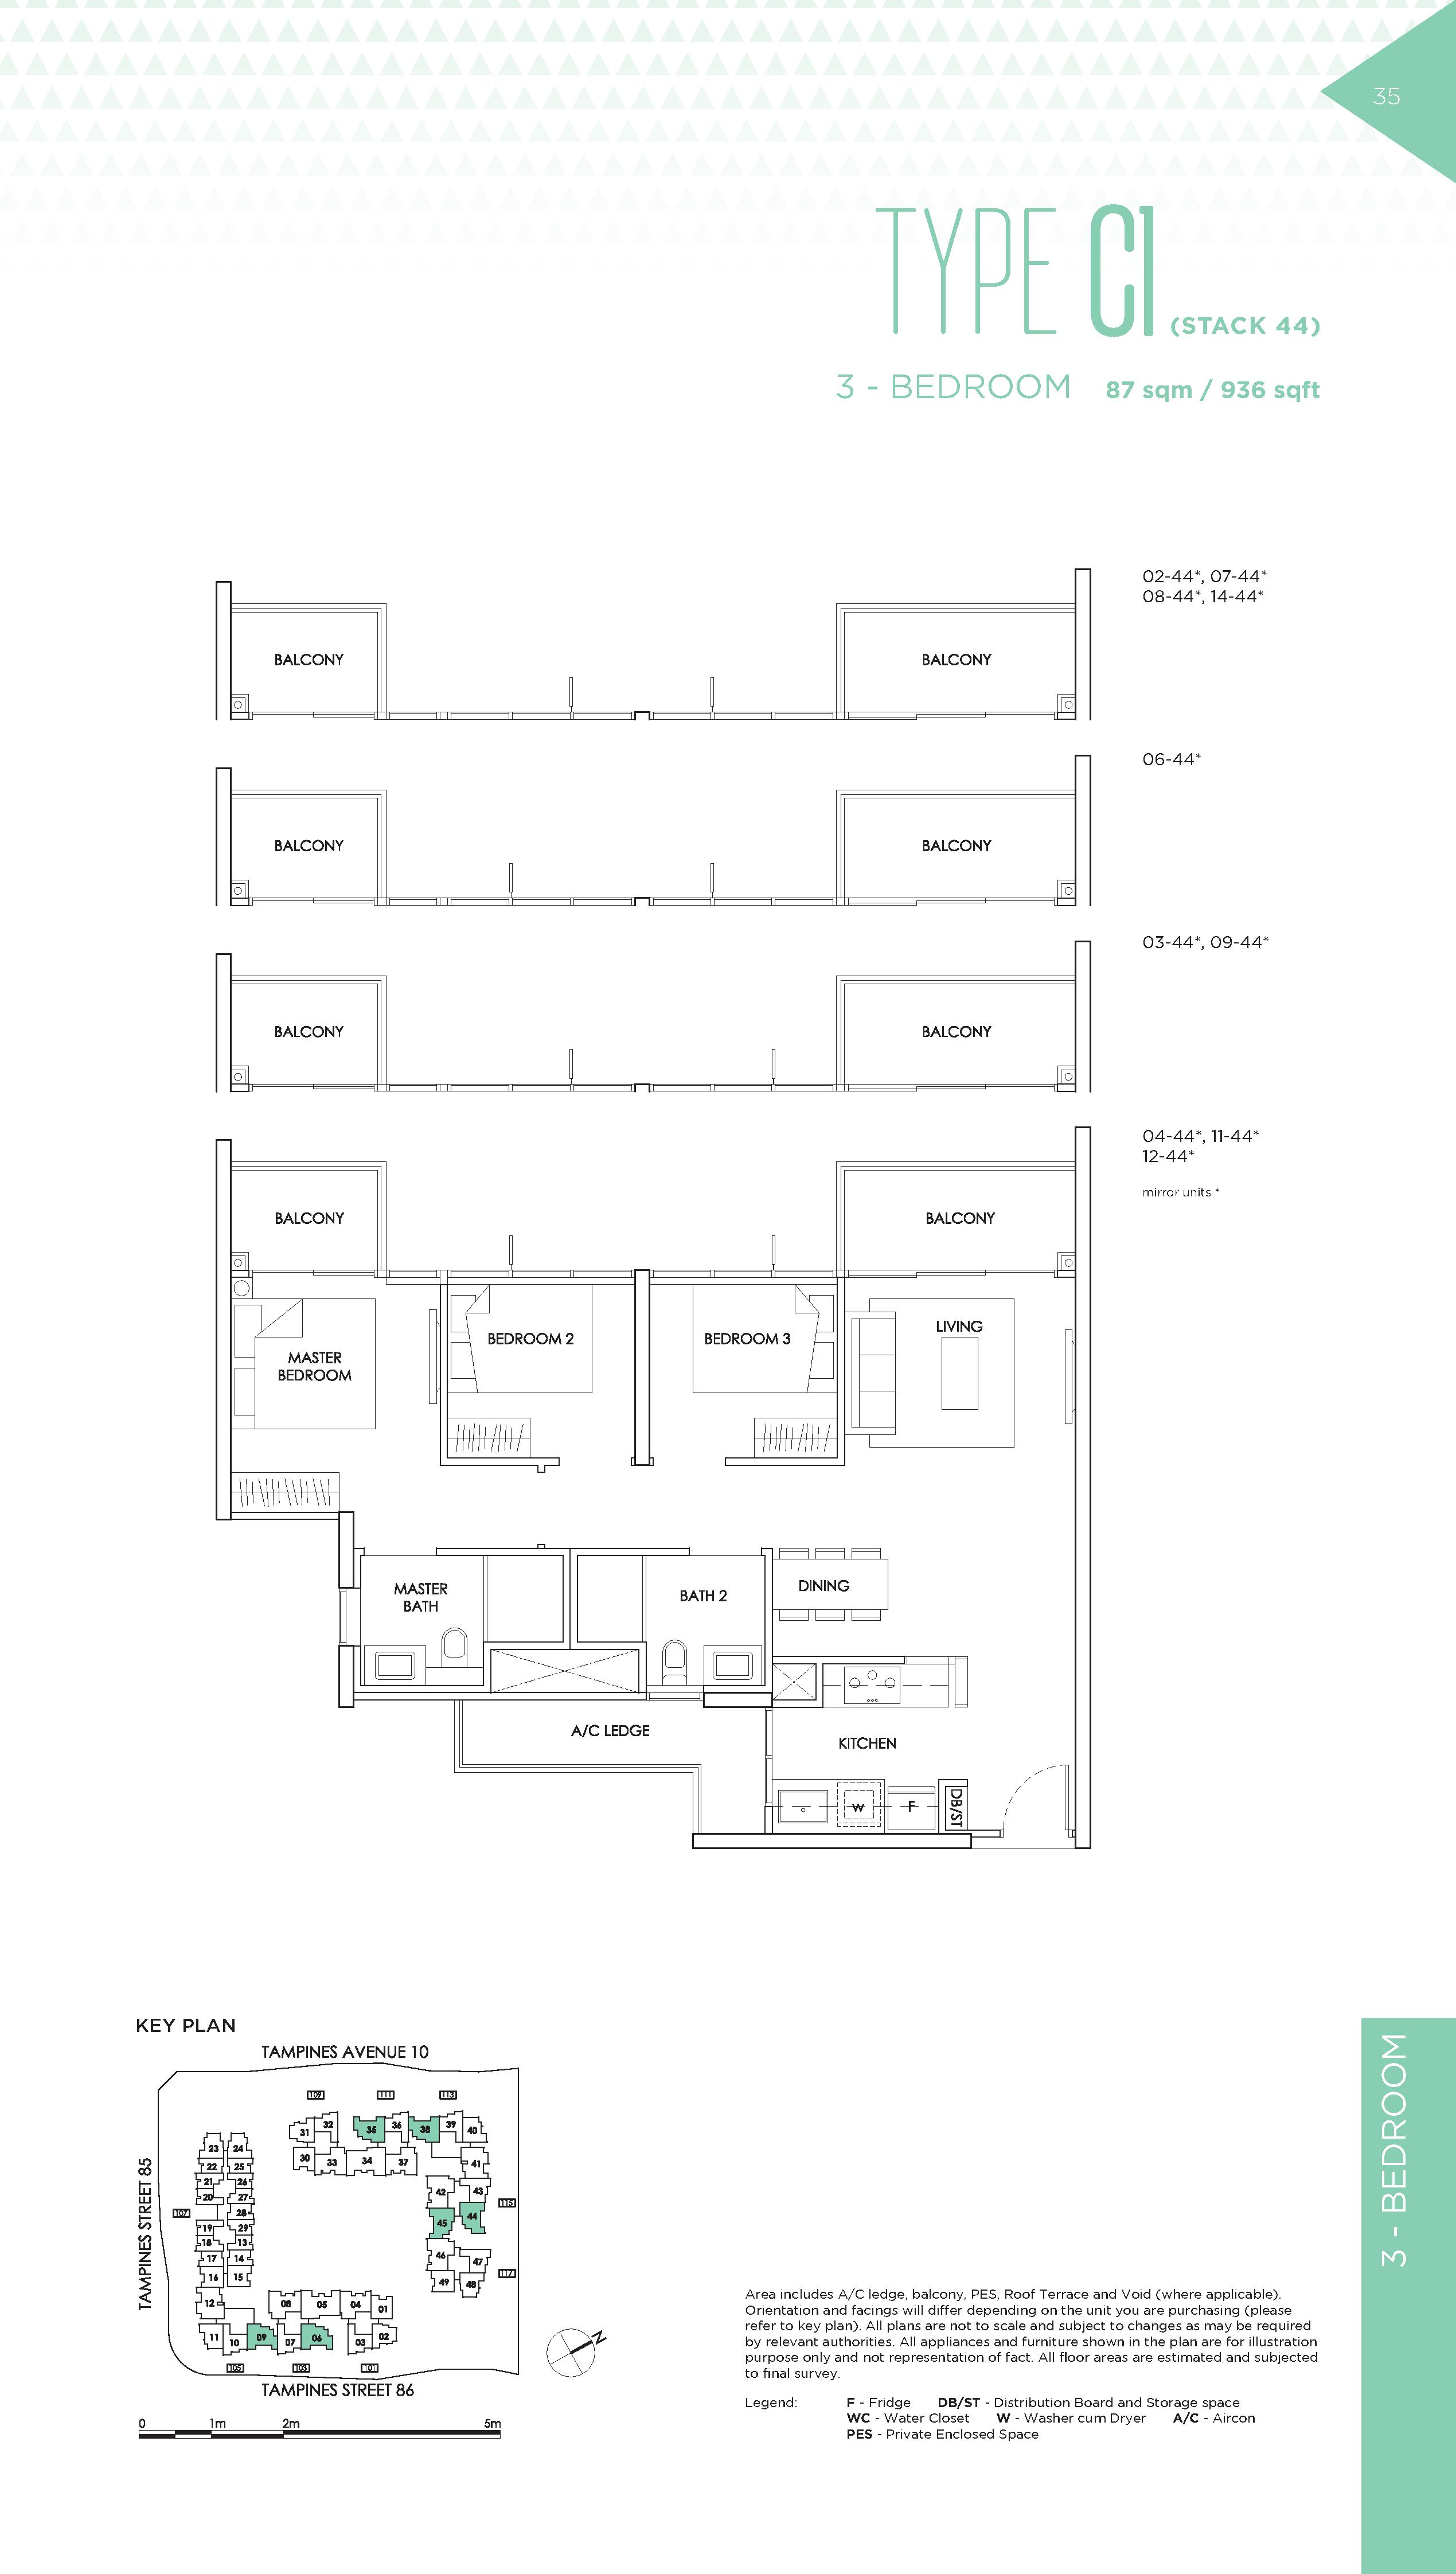 The Alps Residences 3 Bedroom Floor Plans Type C1(Stack 44)